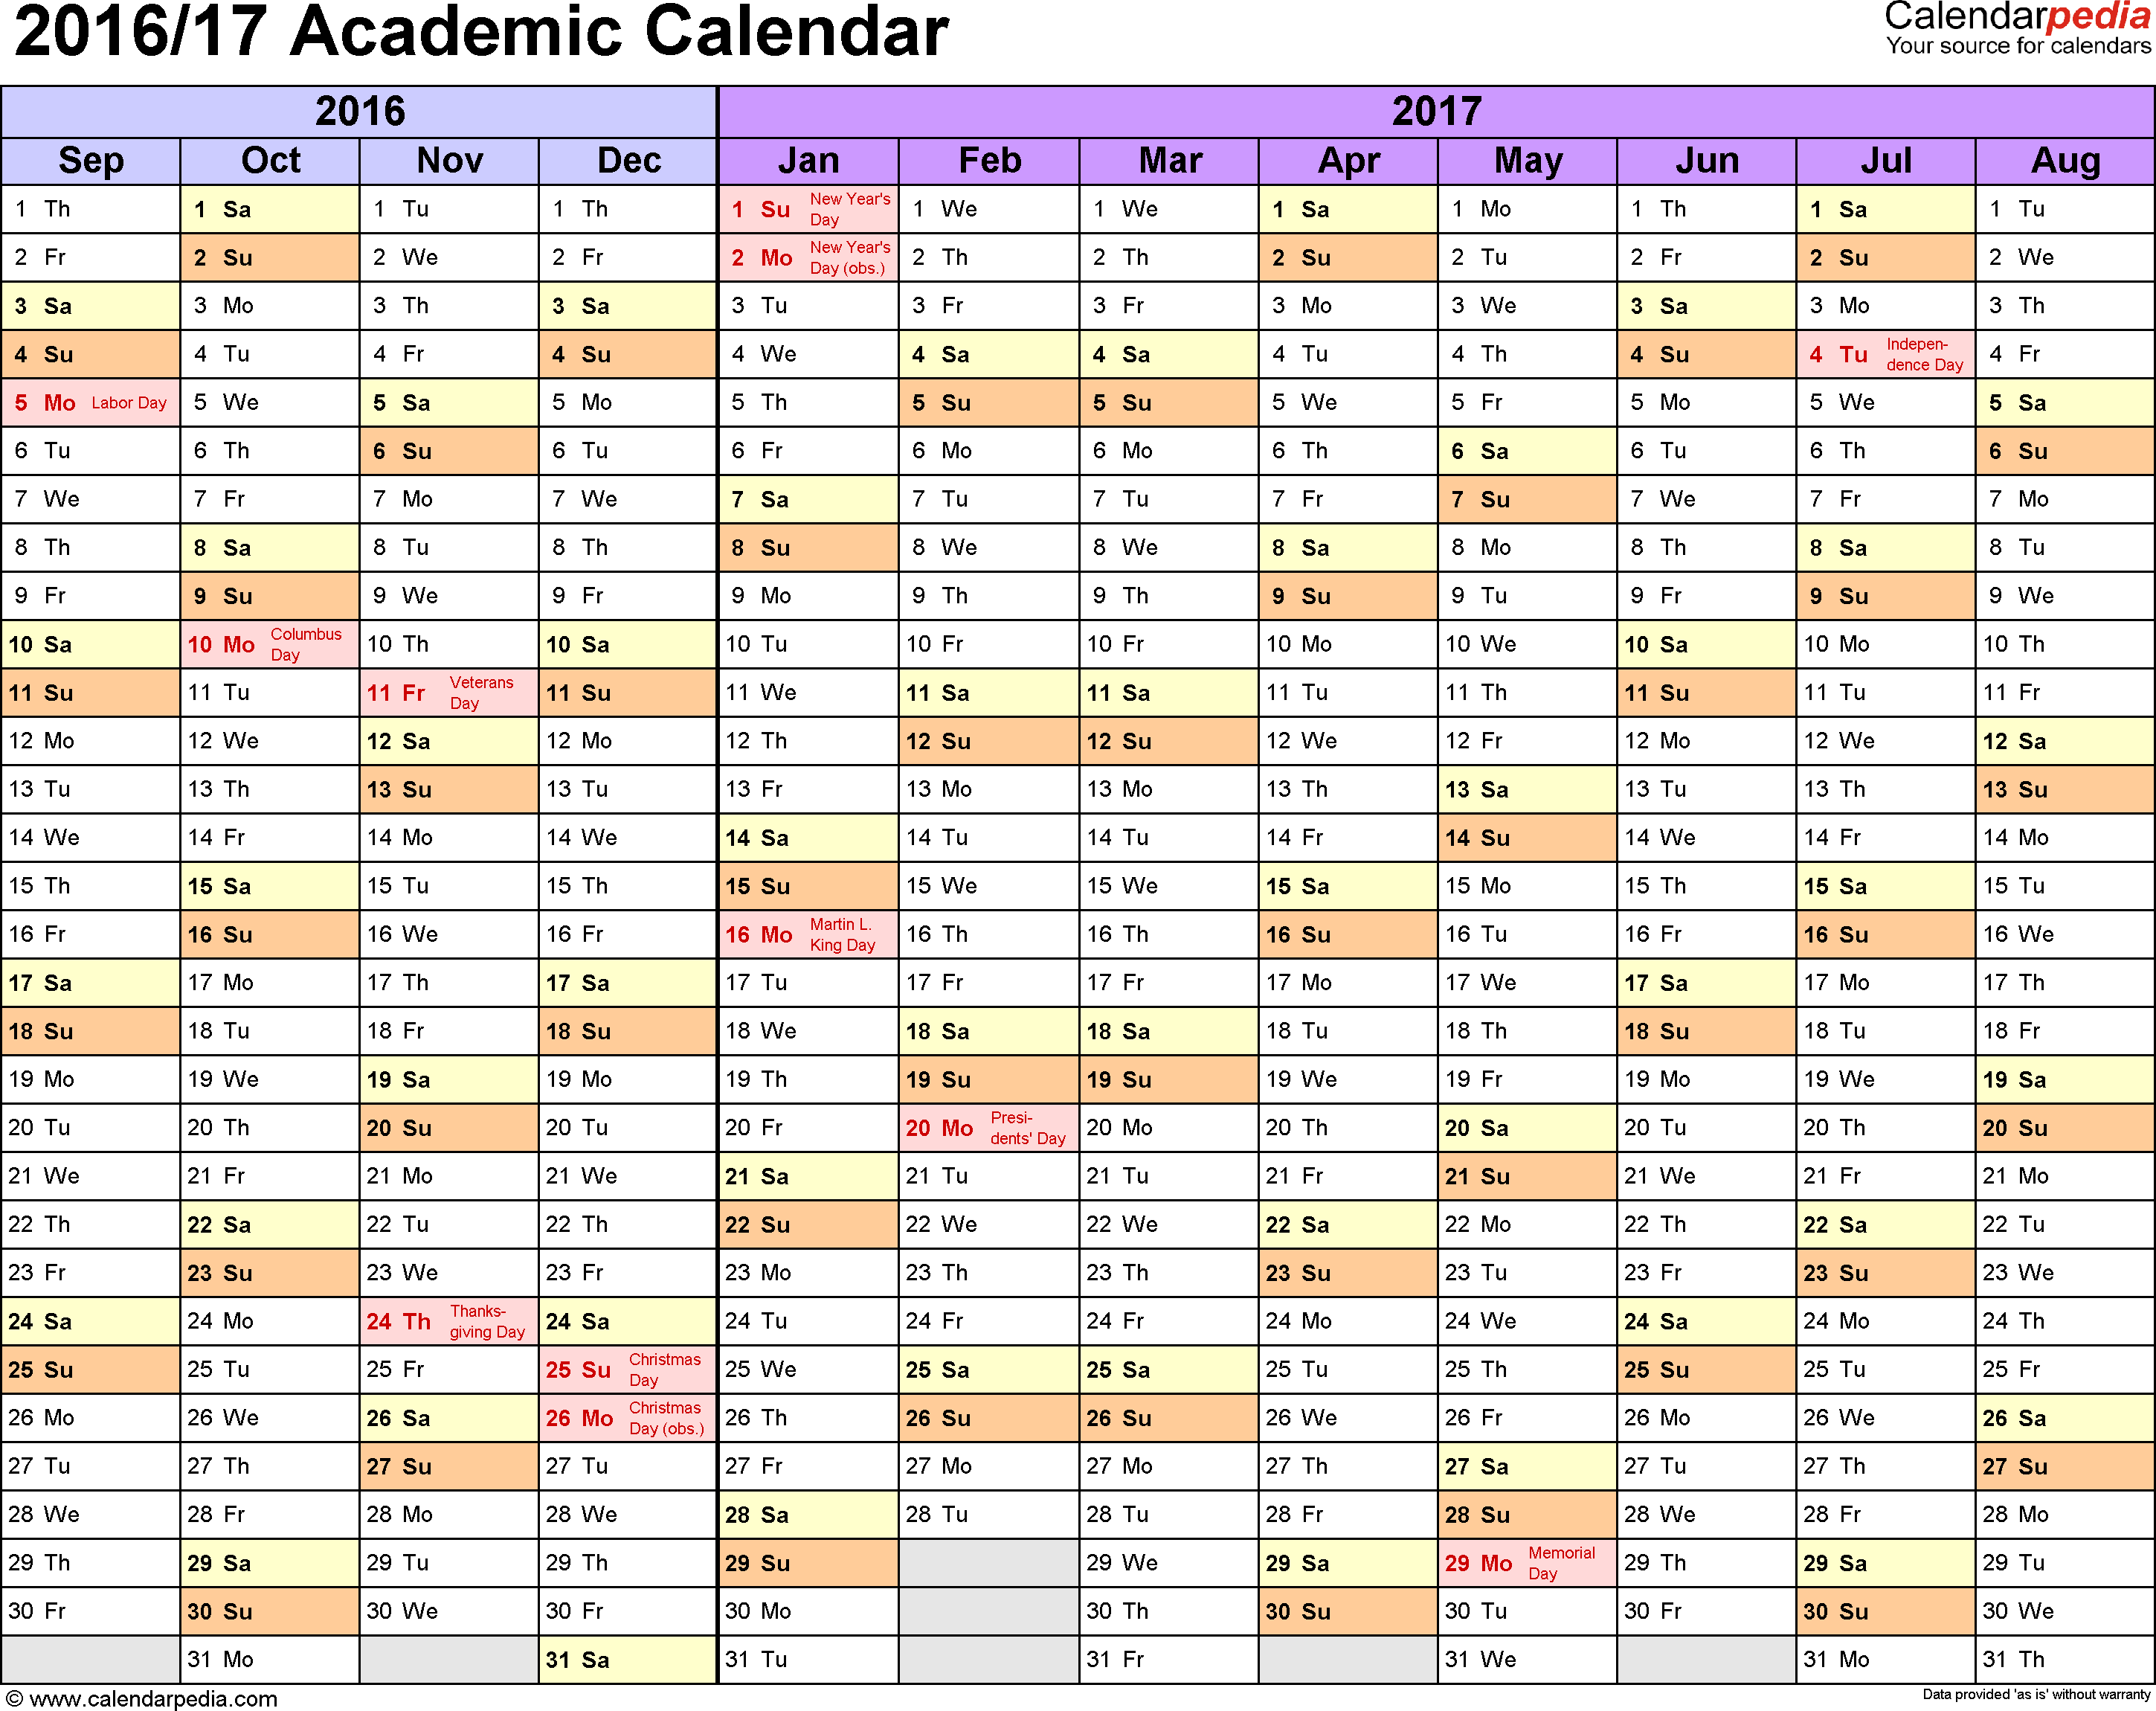 Template 1: Academic calendar 2016/17 for PDF, landscape orientation, months horizontally, 1 page